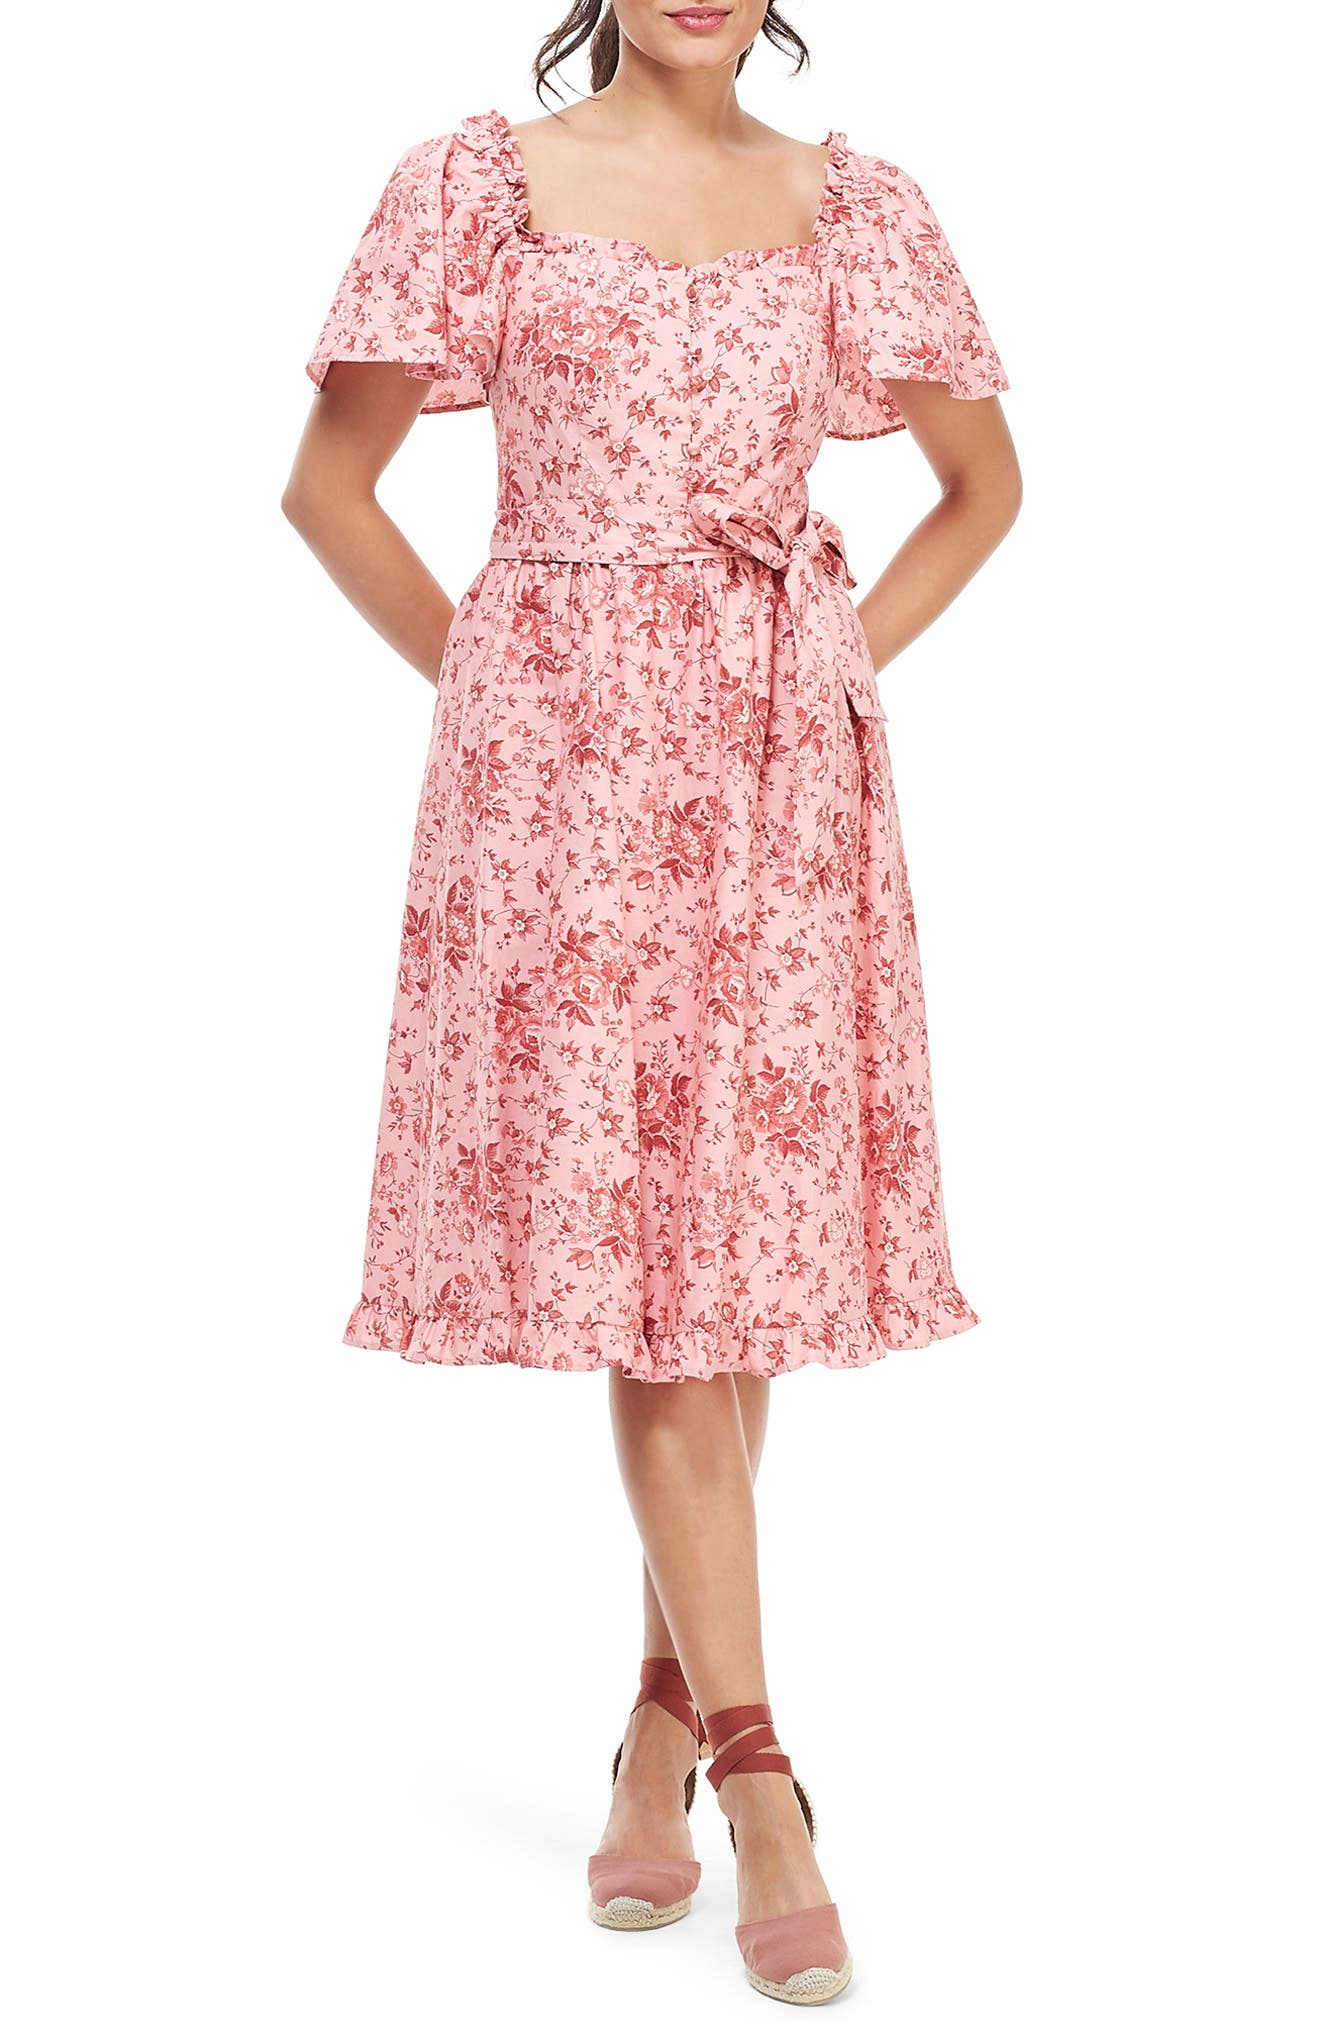 Gal Meets Glam Collection Marianna Floral Print Dress, Pink